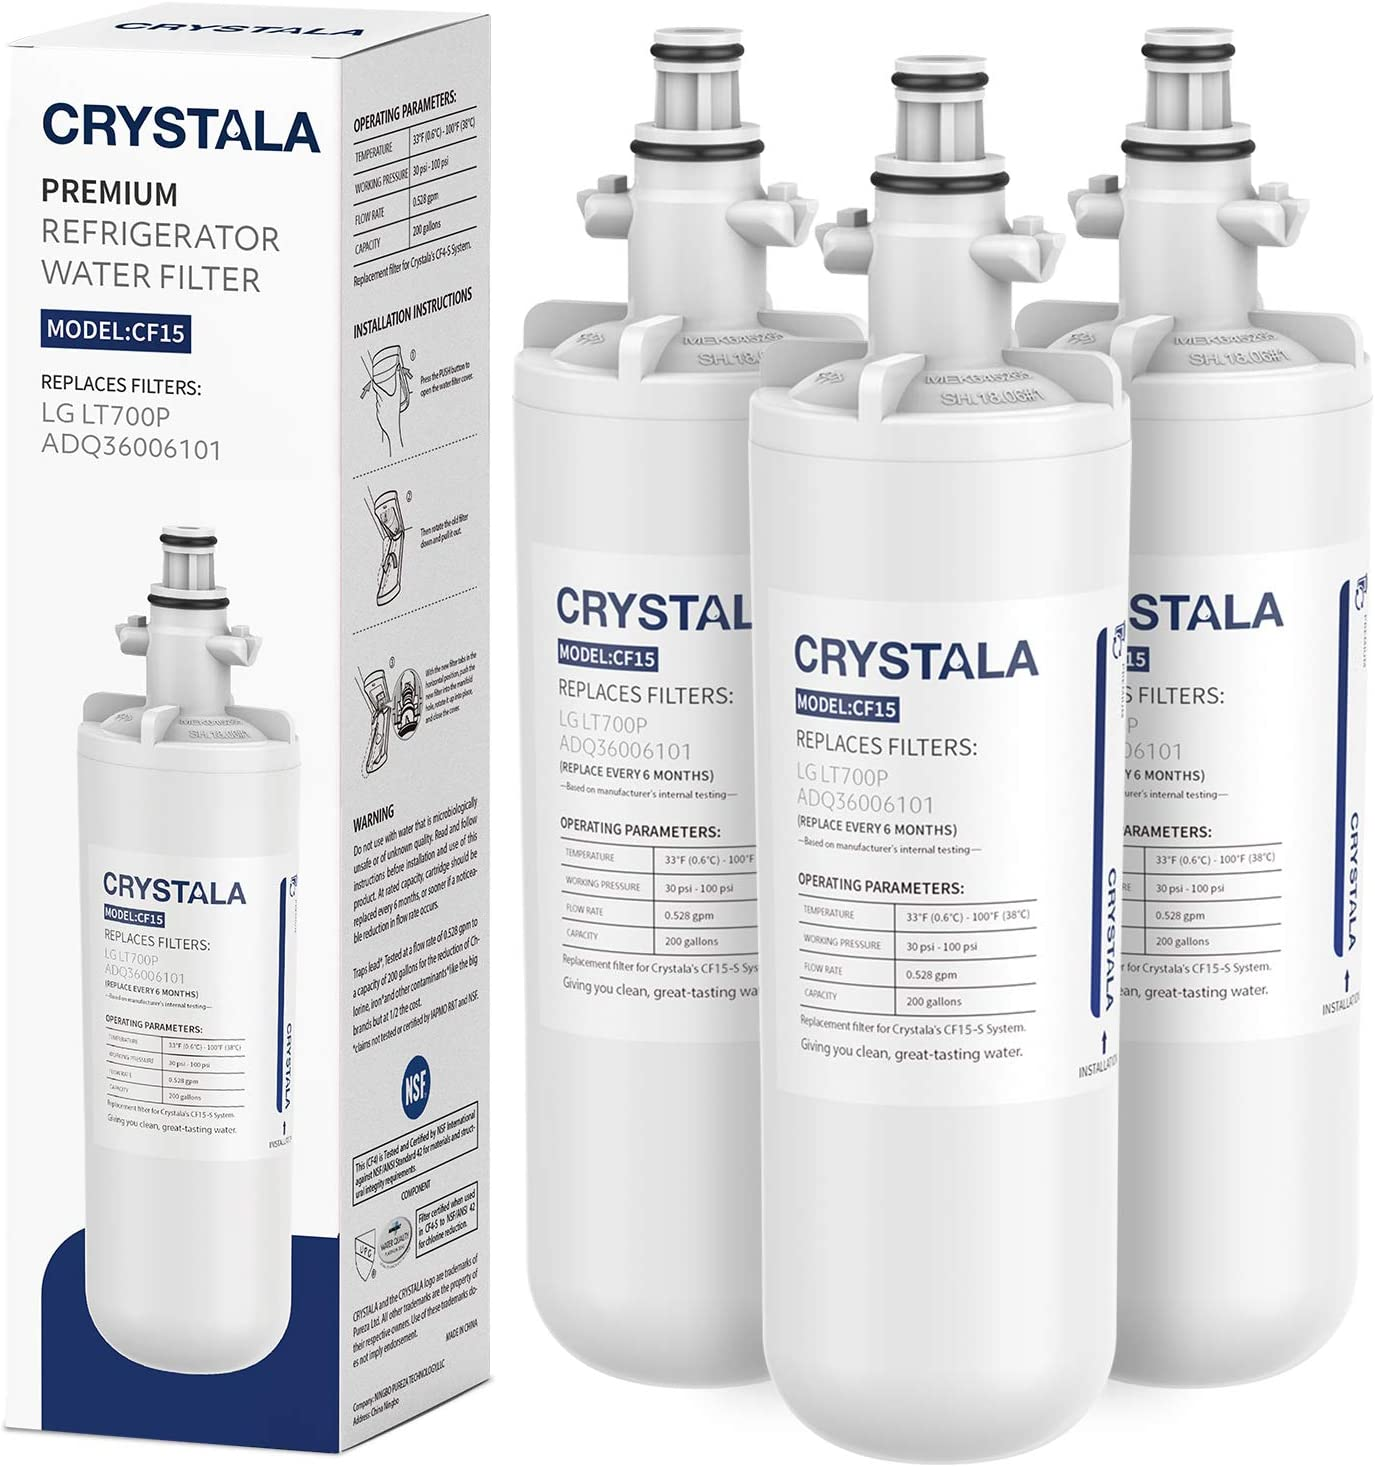 Crystala Filters All items free shipping LT700P Refrigerator Water Max 90% OFF Filter Replacement LG